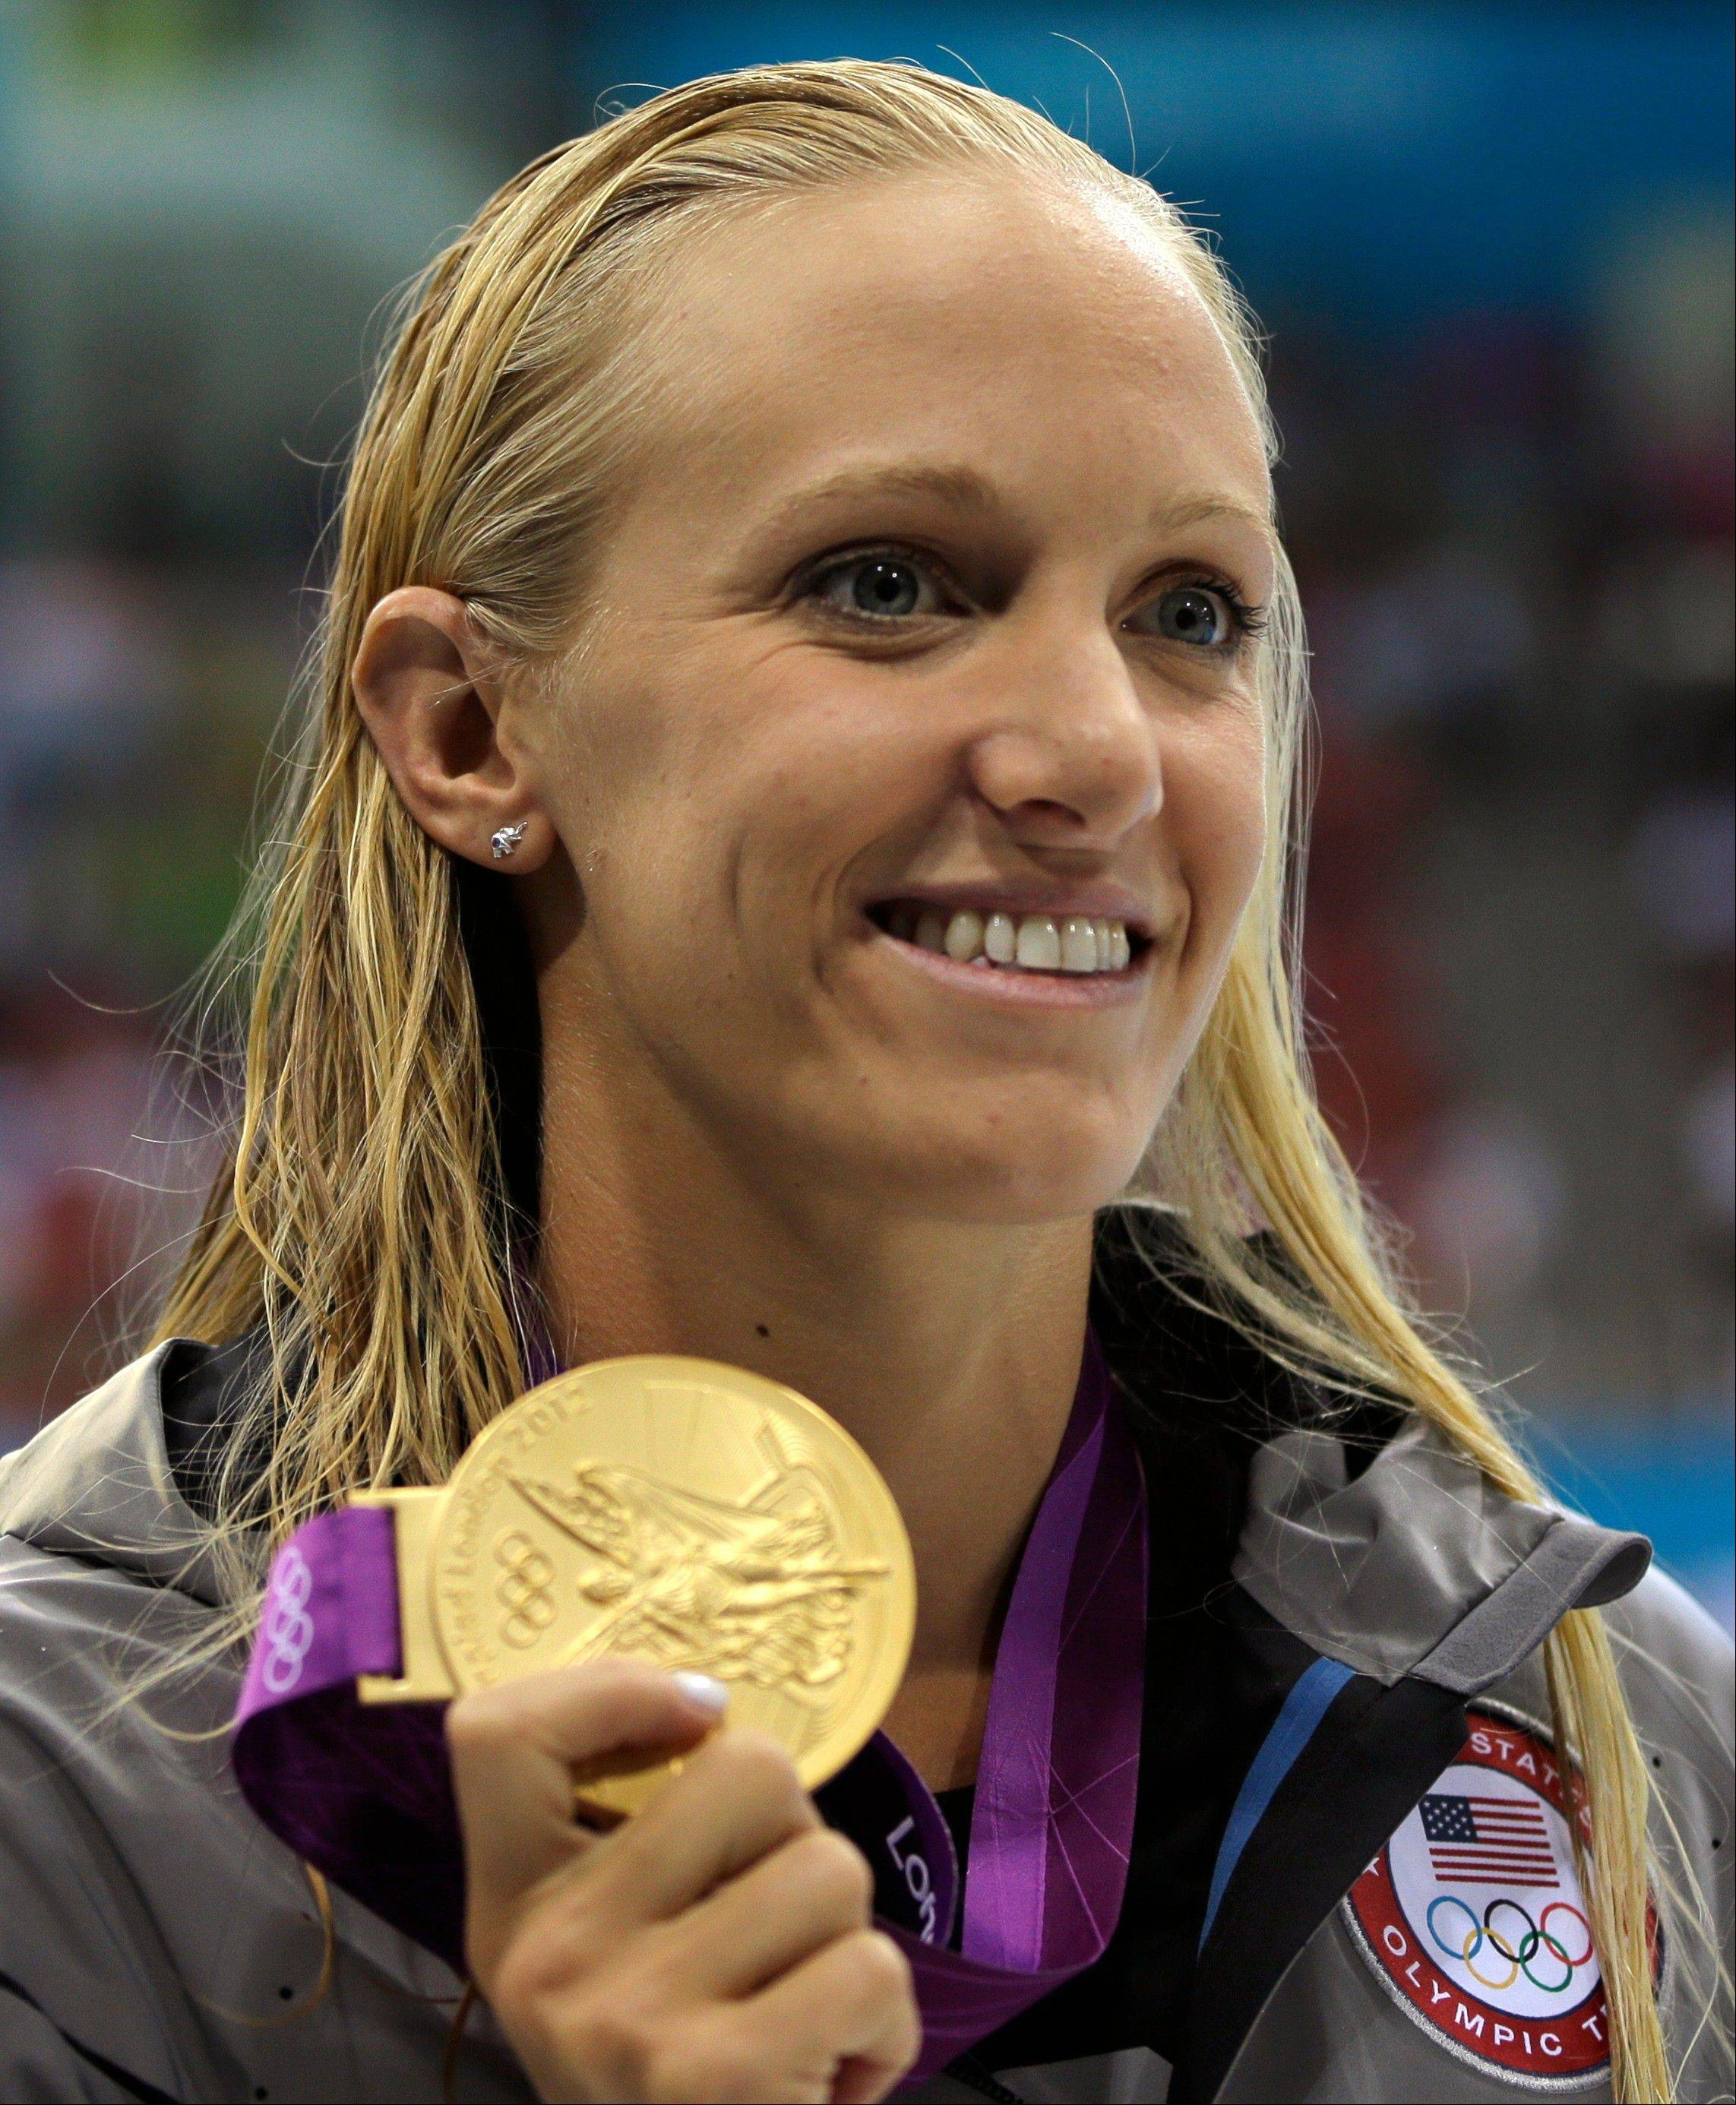 United States' Dana Vollmer holds her gold medal for her win in the women's 100-meter butterfly swimming final at the Aquatics Centre in the Olympic Park during the 2012 Summer Olympics in London. She set a world record in the win.